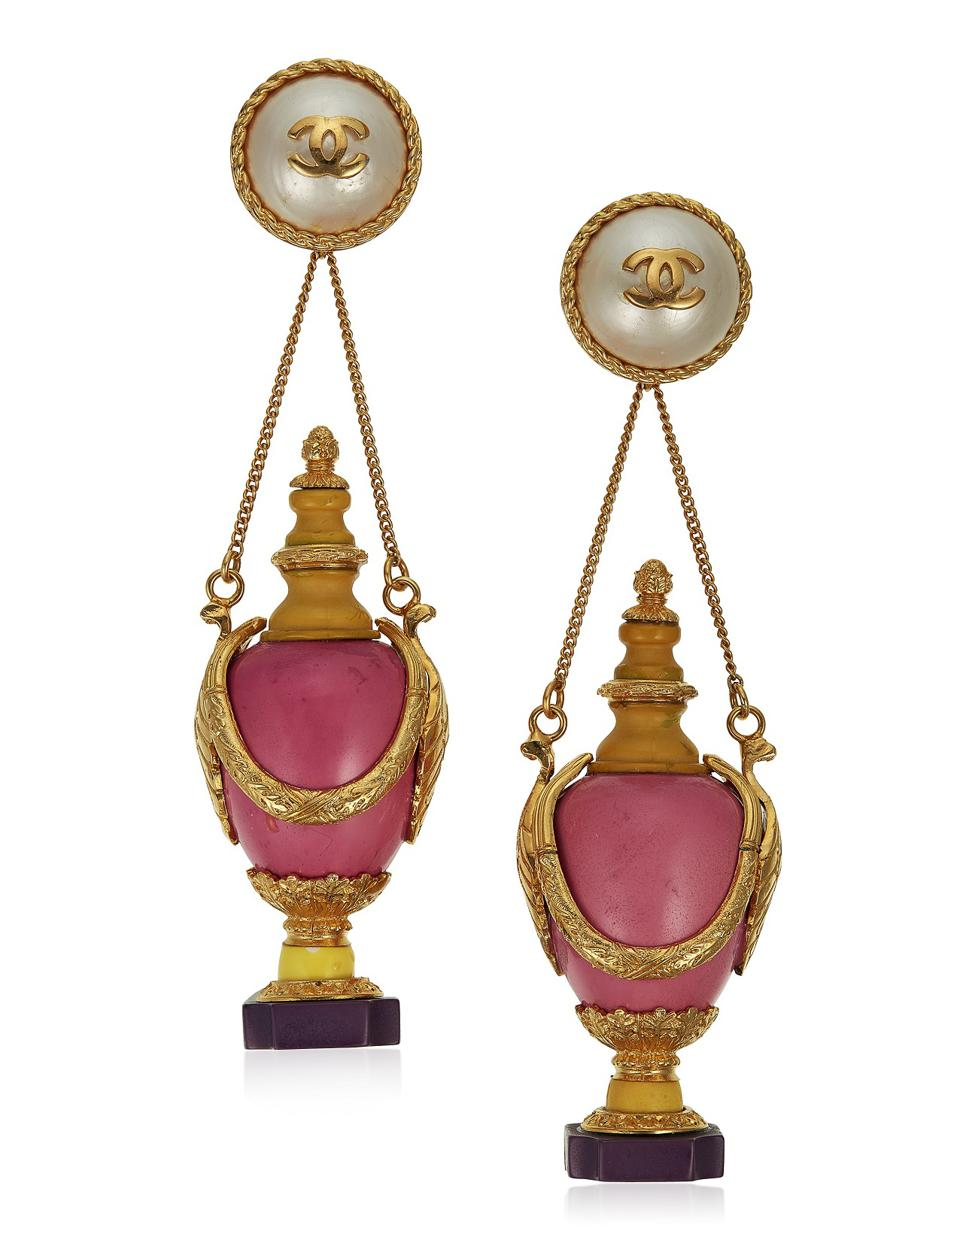 Important unsigned Chanel oversized faux pearl and resin earrings, $3,000 - $5,000